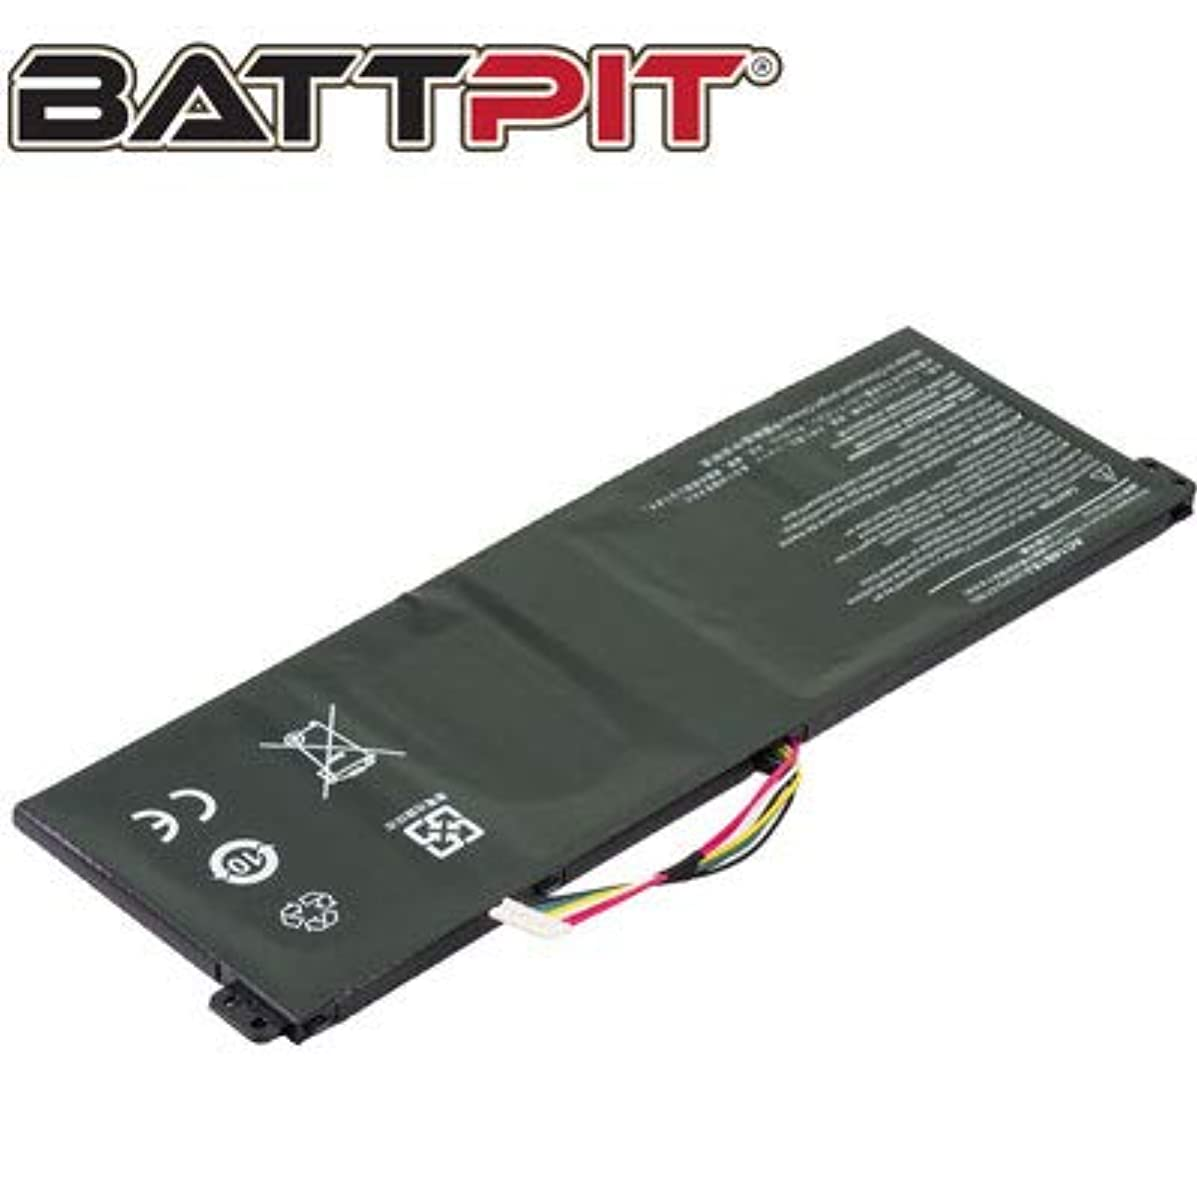 Battpit? Laptop/Notebook Battery Replacement for Acer Chromebook CB3-532-C47C (2200mAh / 25Wh)